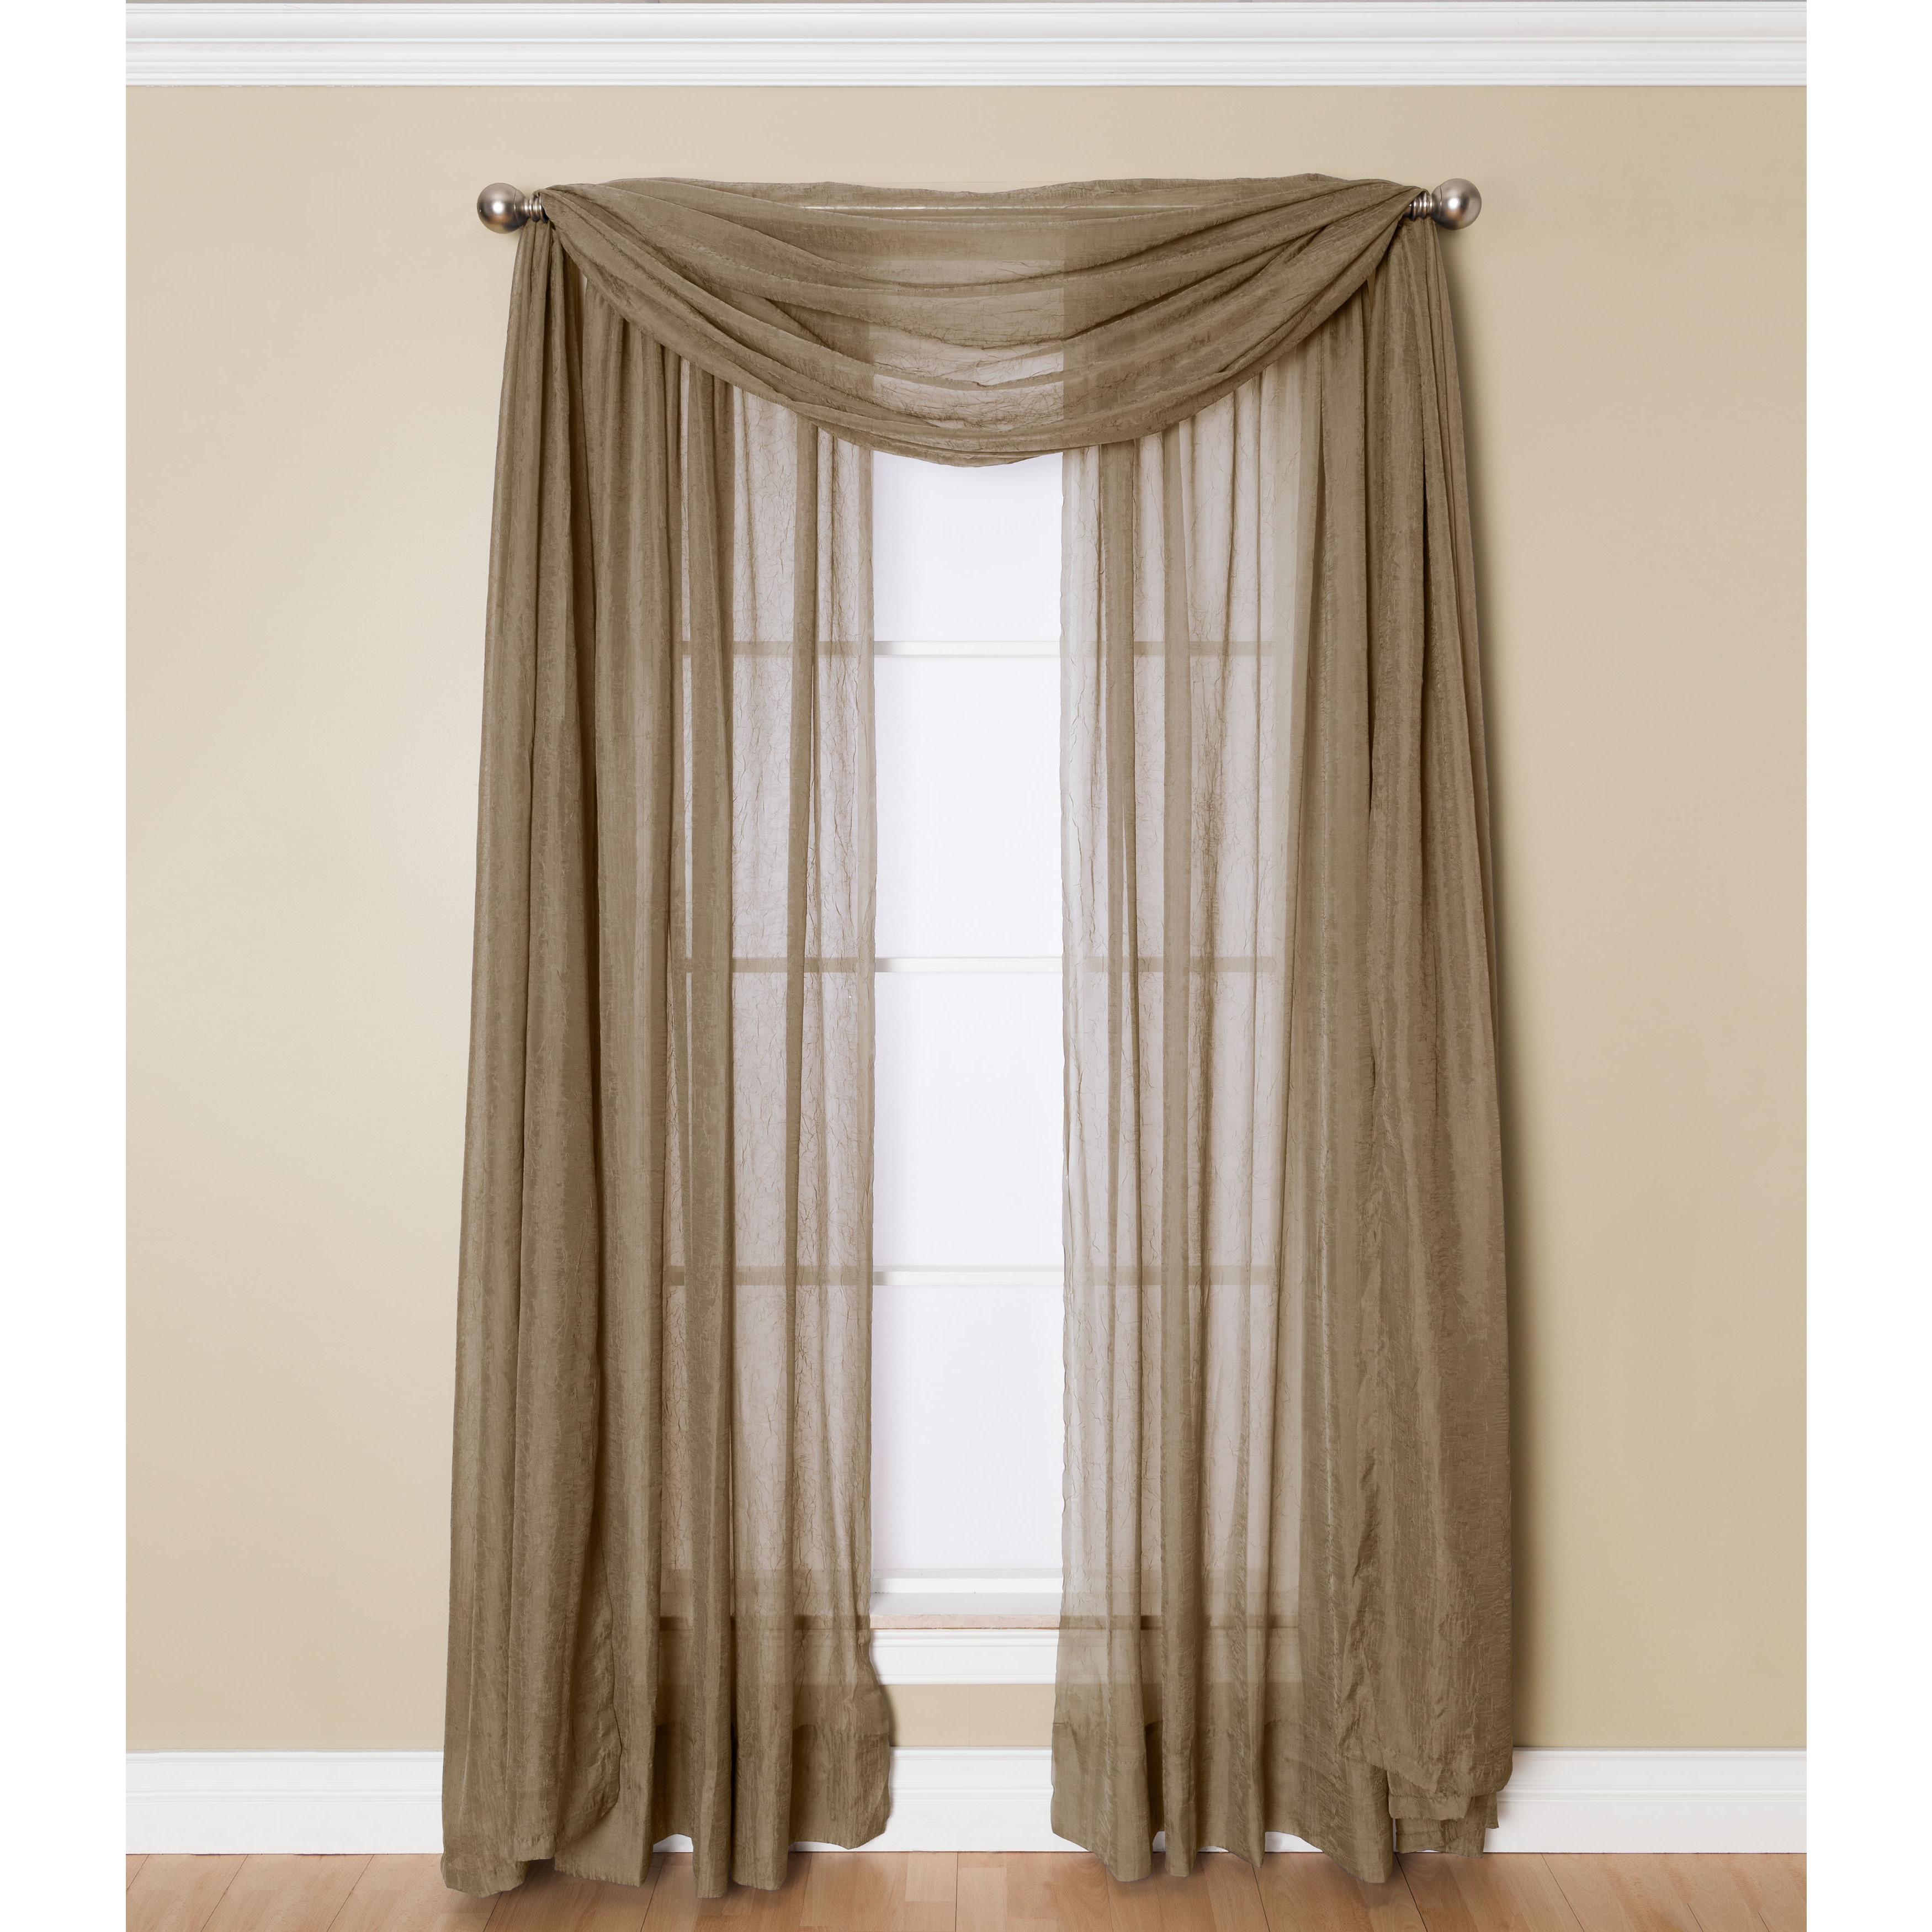 with ideas curtains home inch sheers tiered tiers burgundy interior cafe cute kichen curtain window decorating modern kitchen target